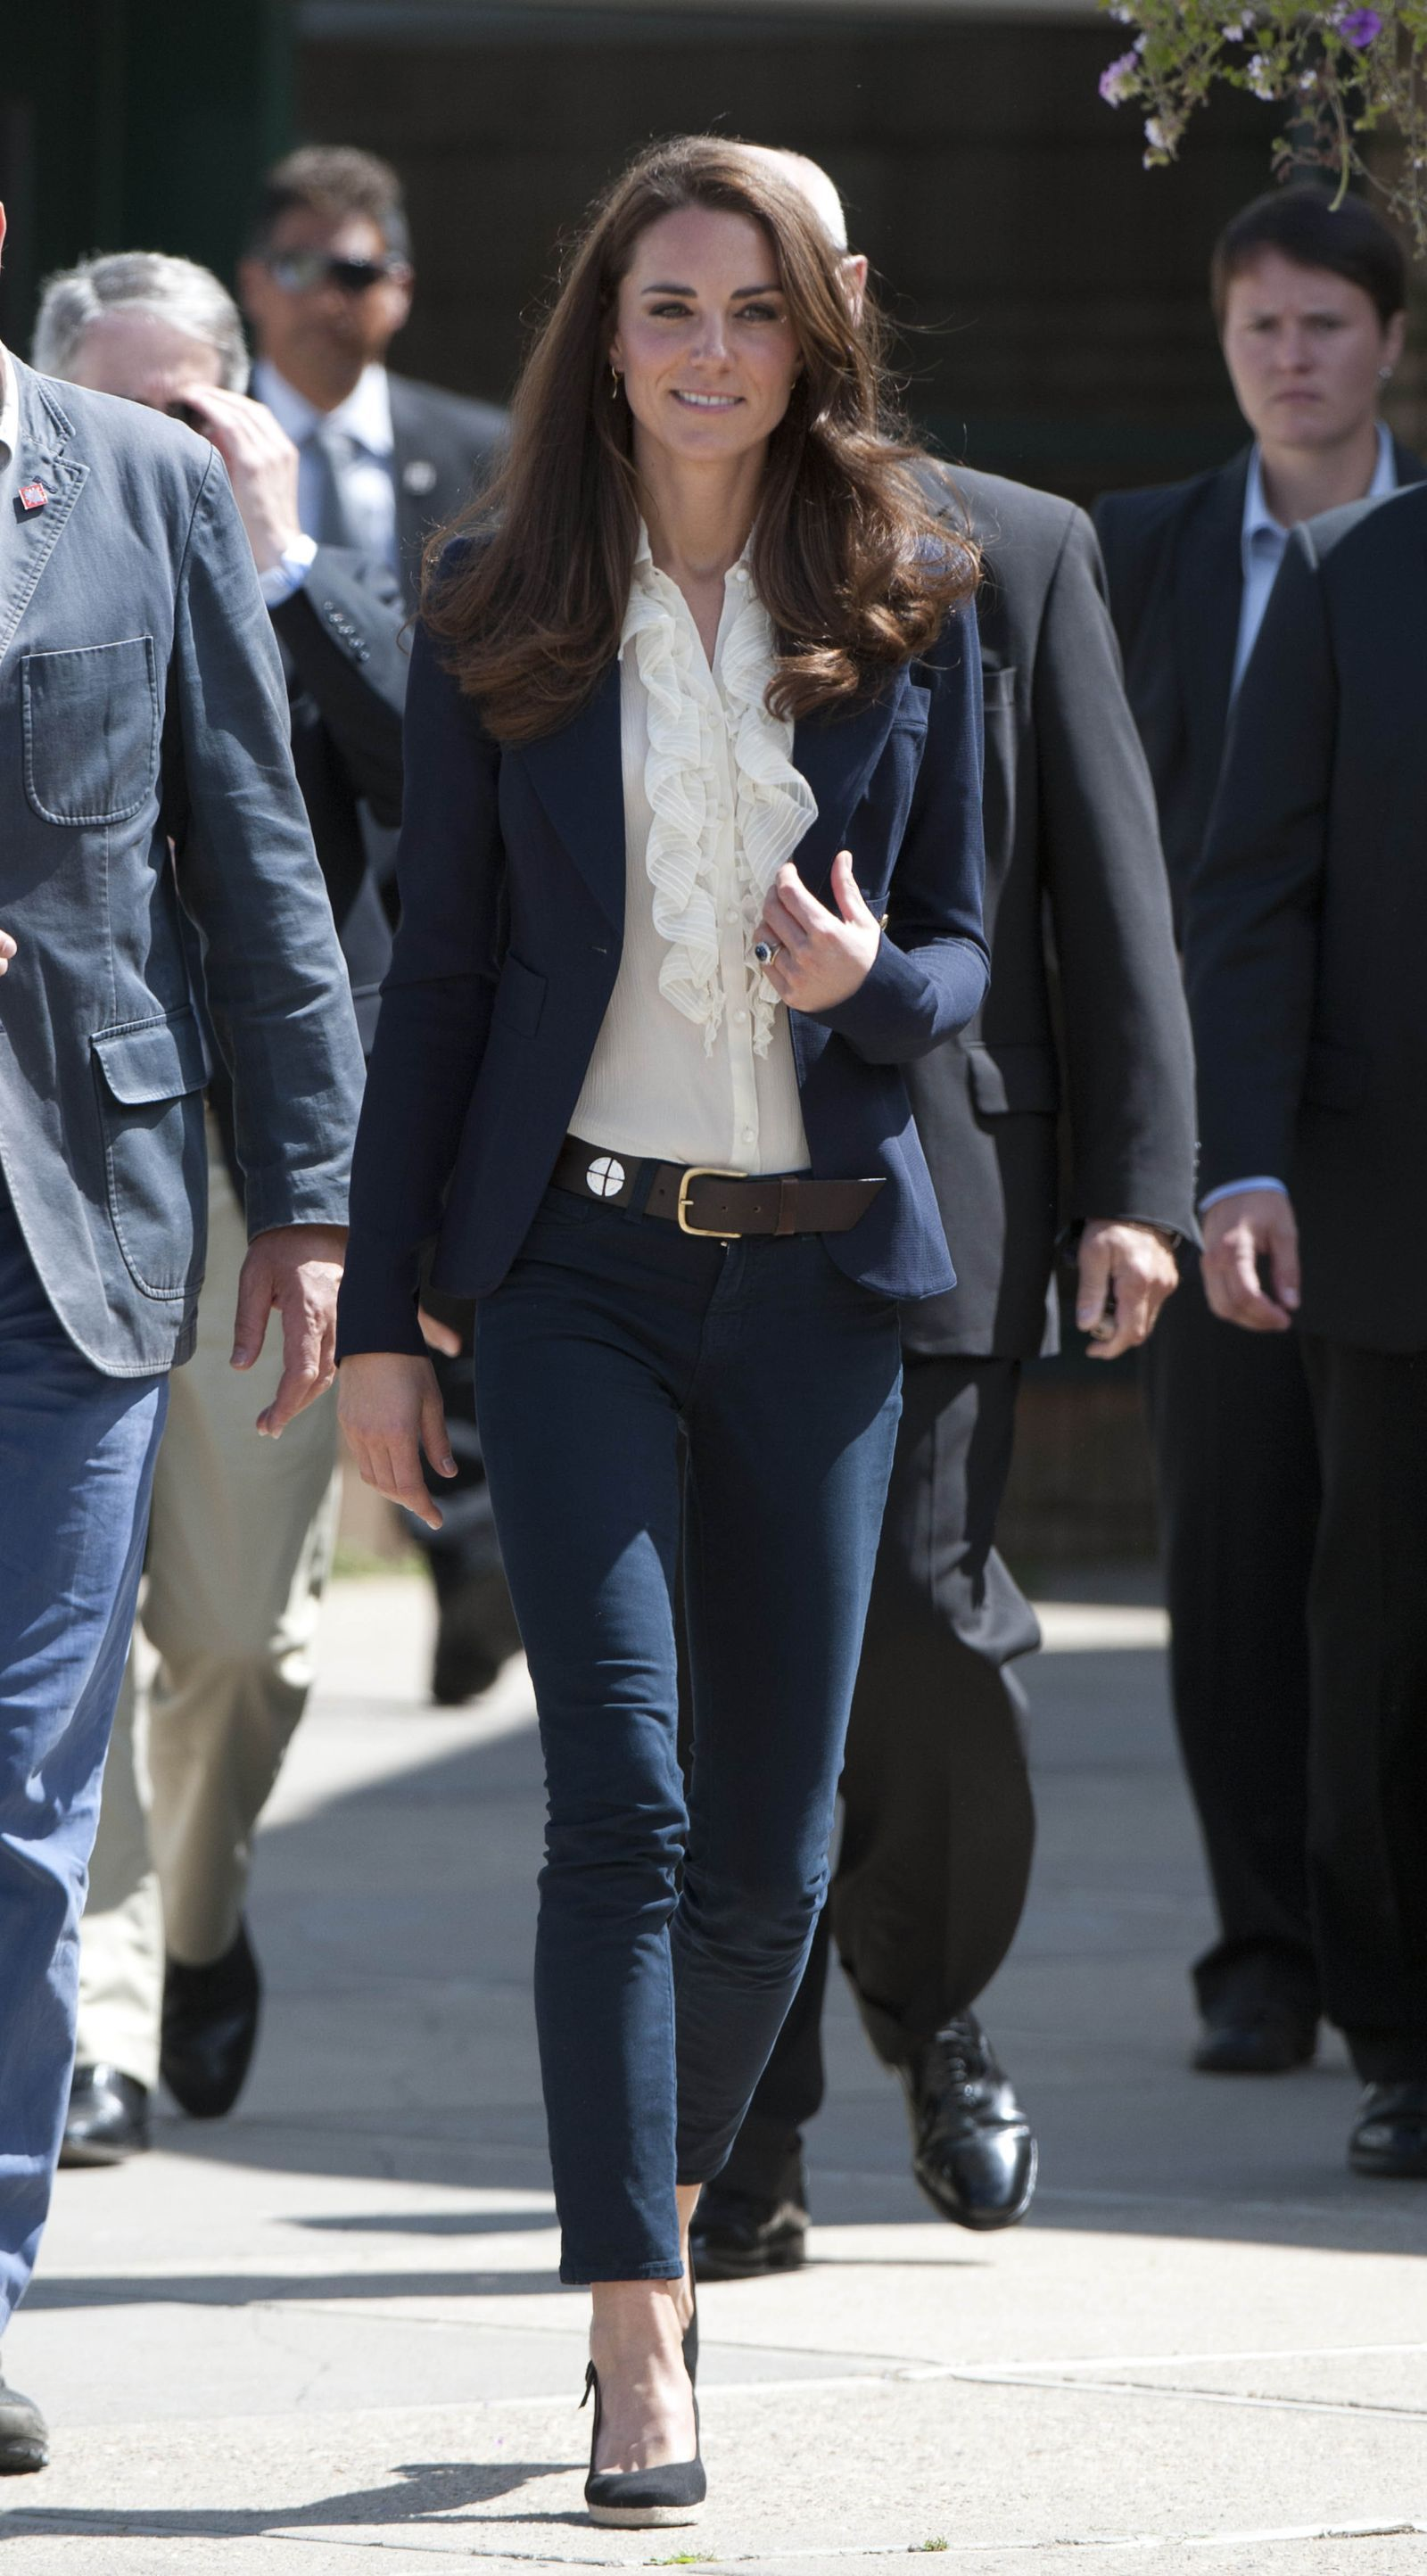 Kate Middleton's most iconic casual style moments